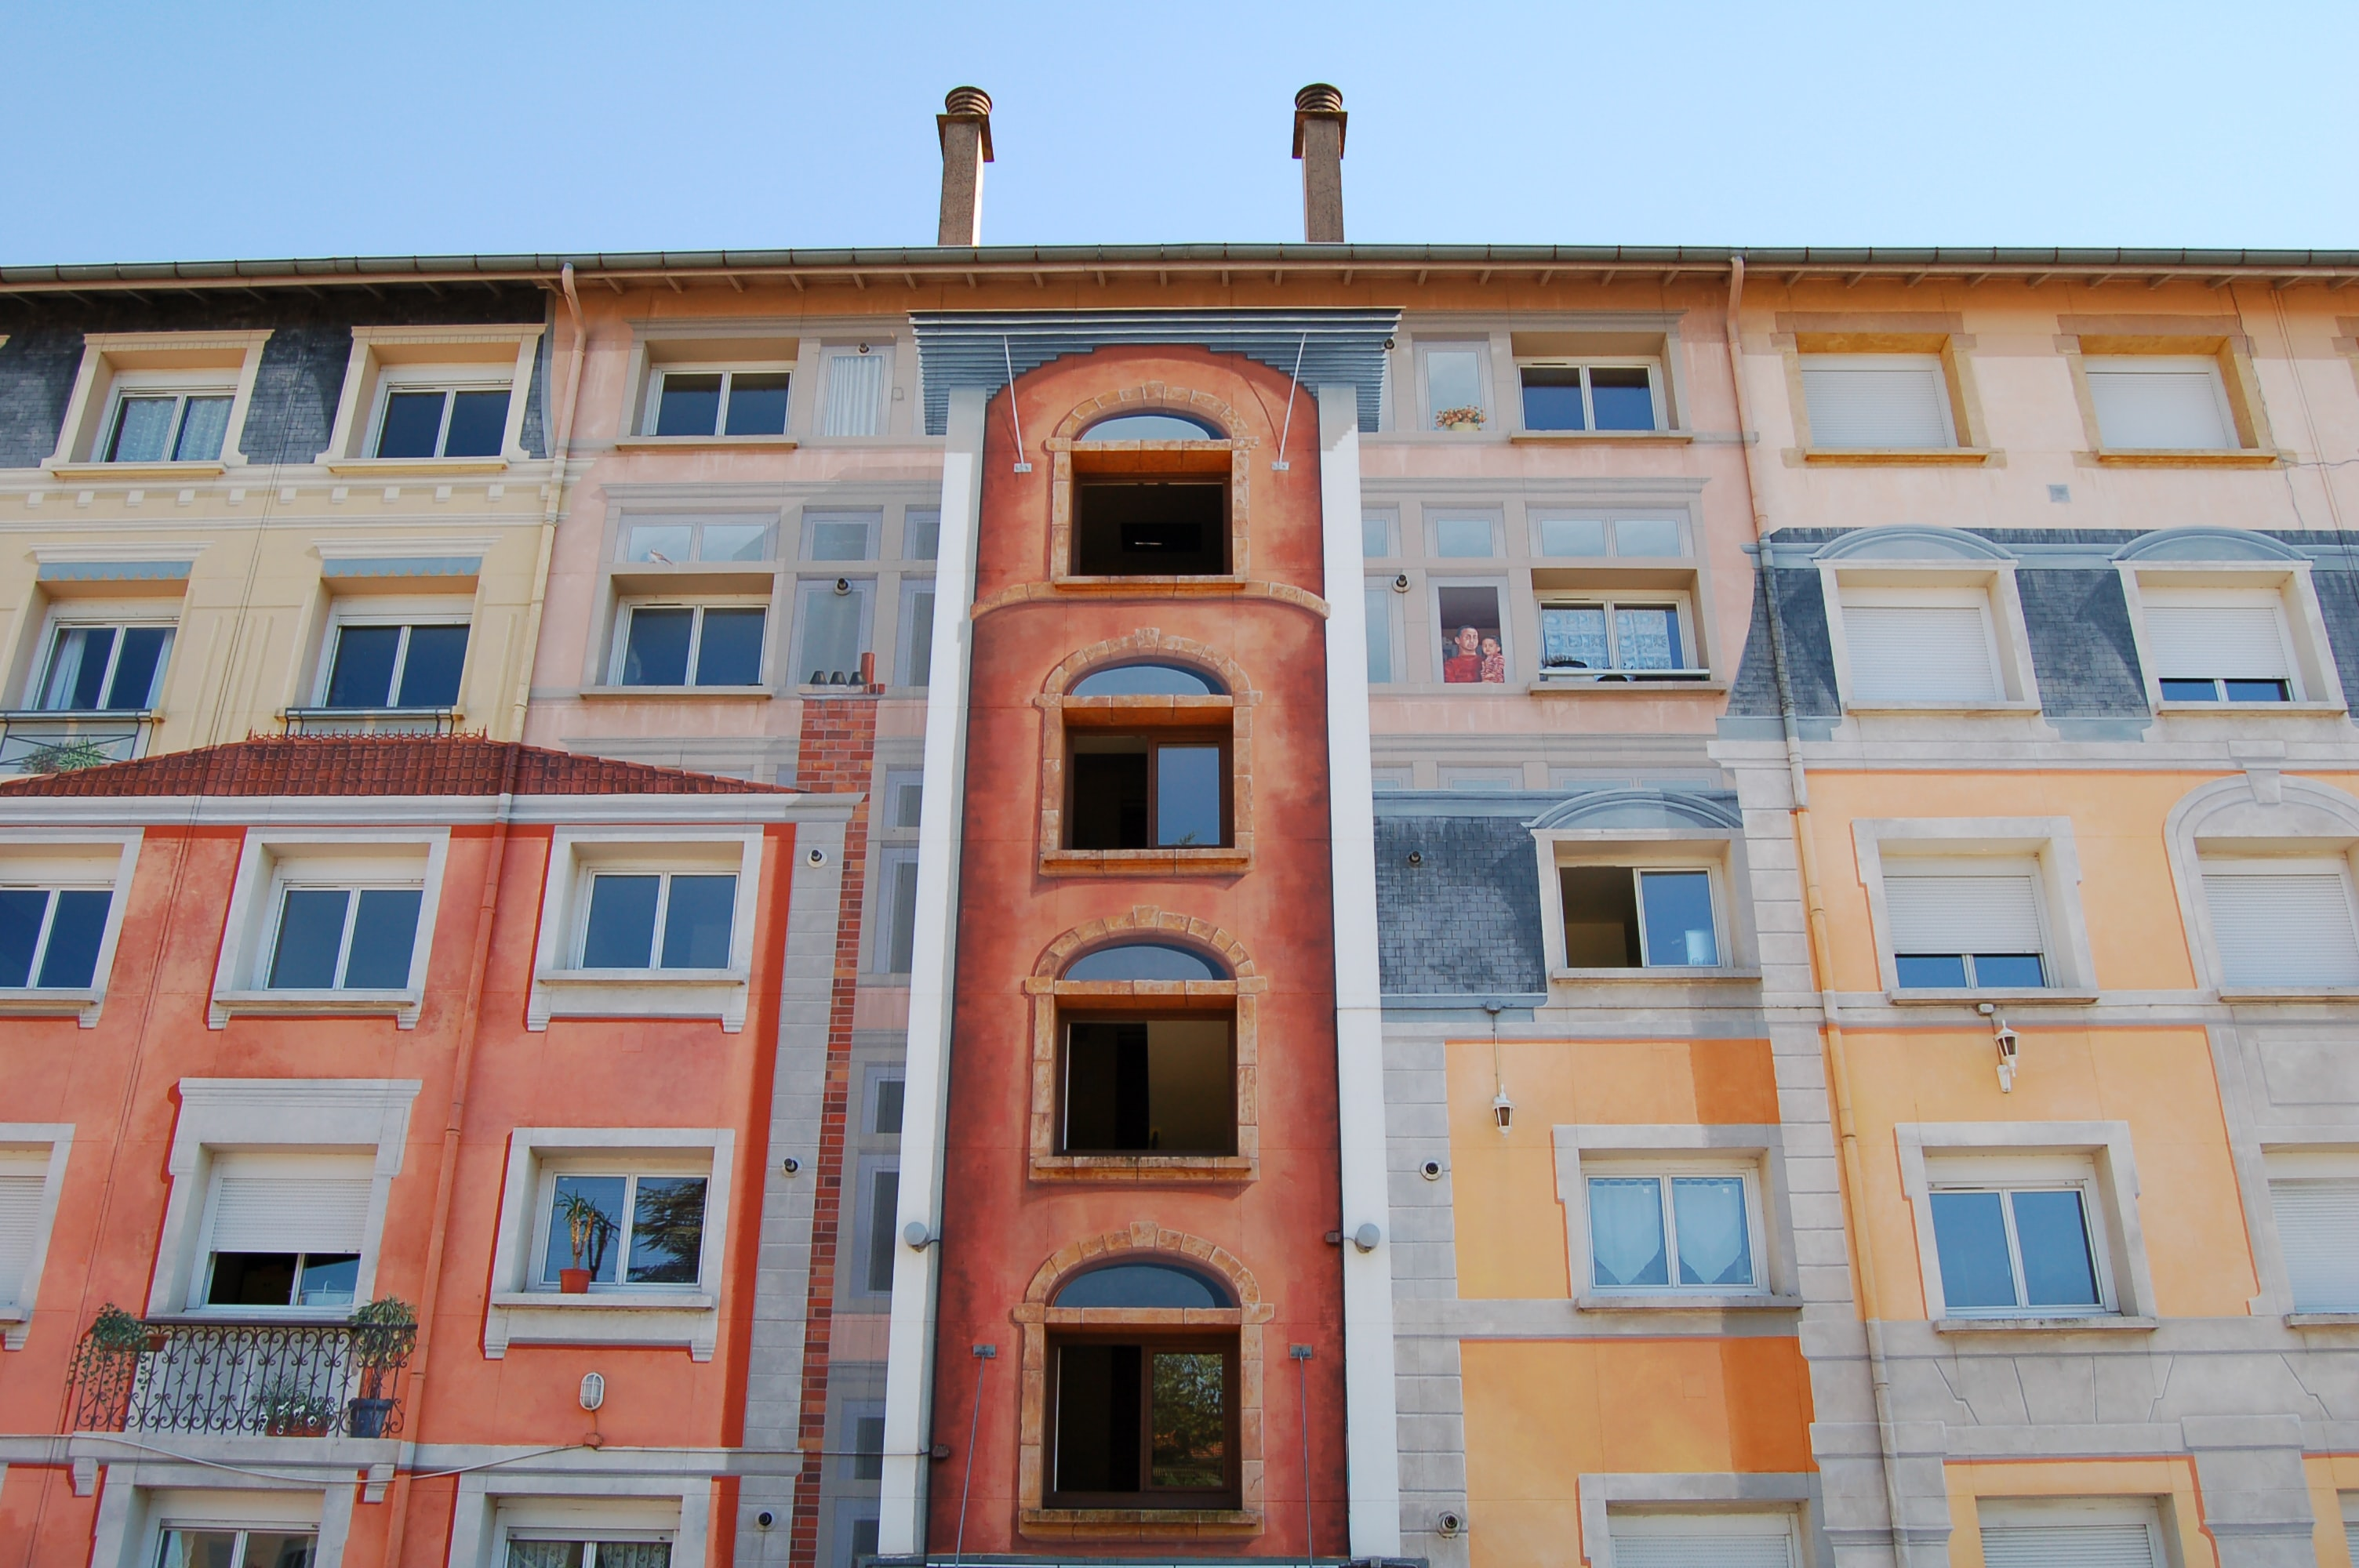 Blue sky and urban building in Lyon with multicolored walls and complex facade with varied windows